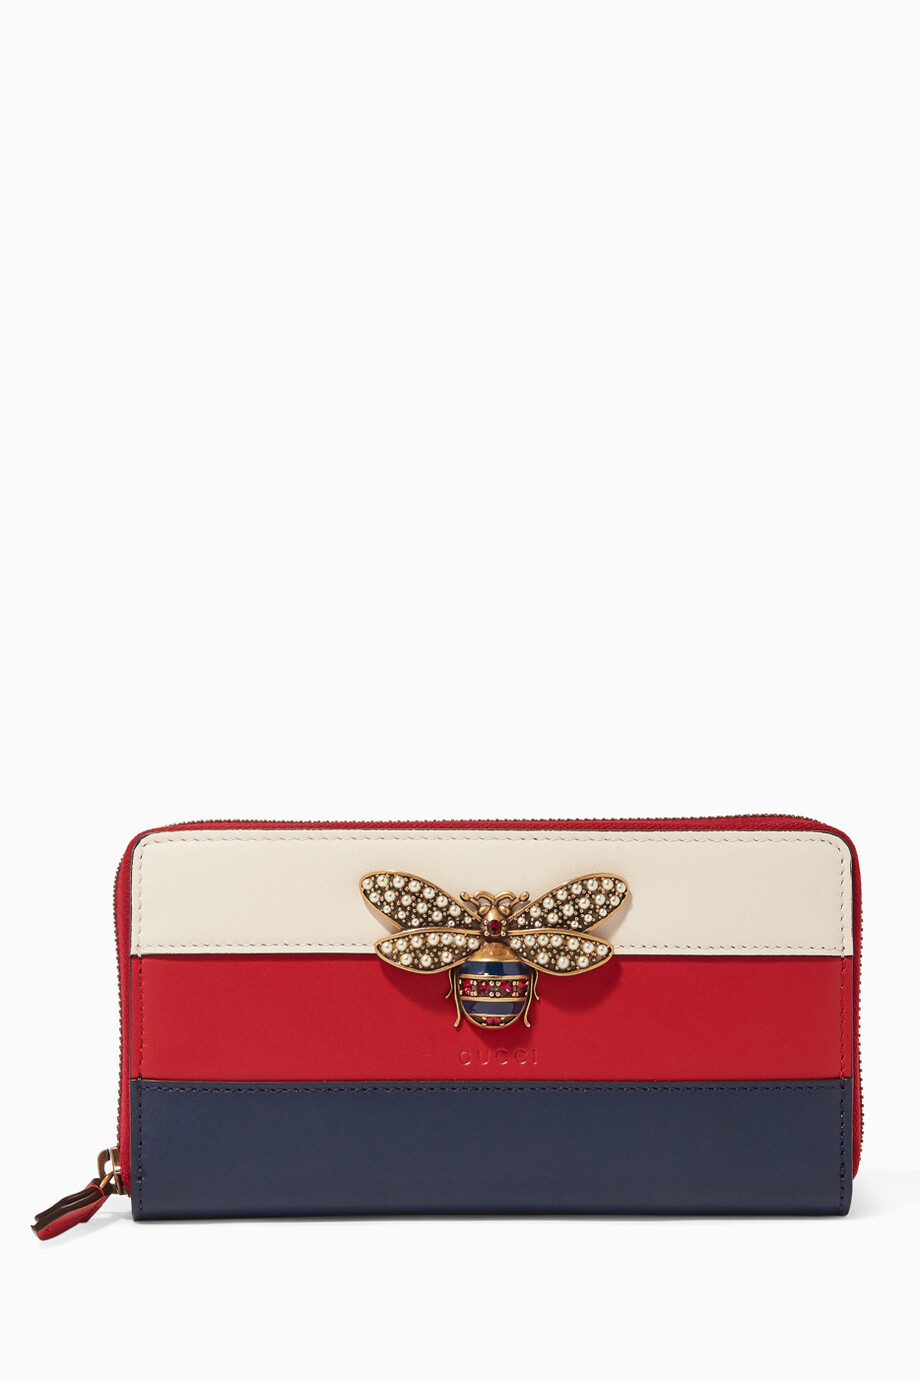 7c08357ced59 Shop Gucci Red Red Queen Margaret Zip Around Leather Wallet for ...